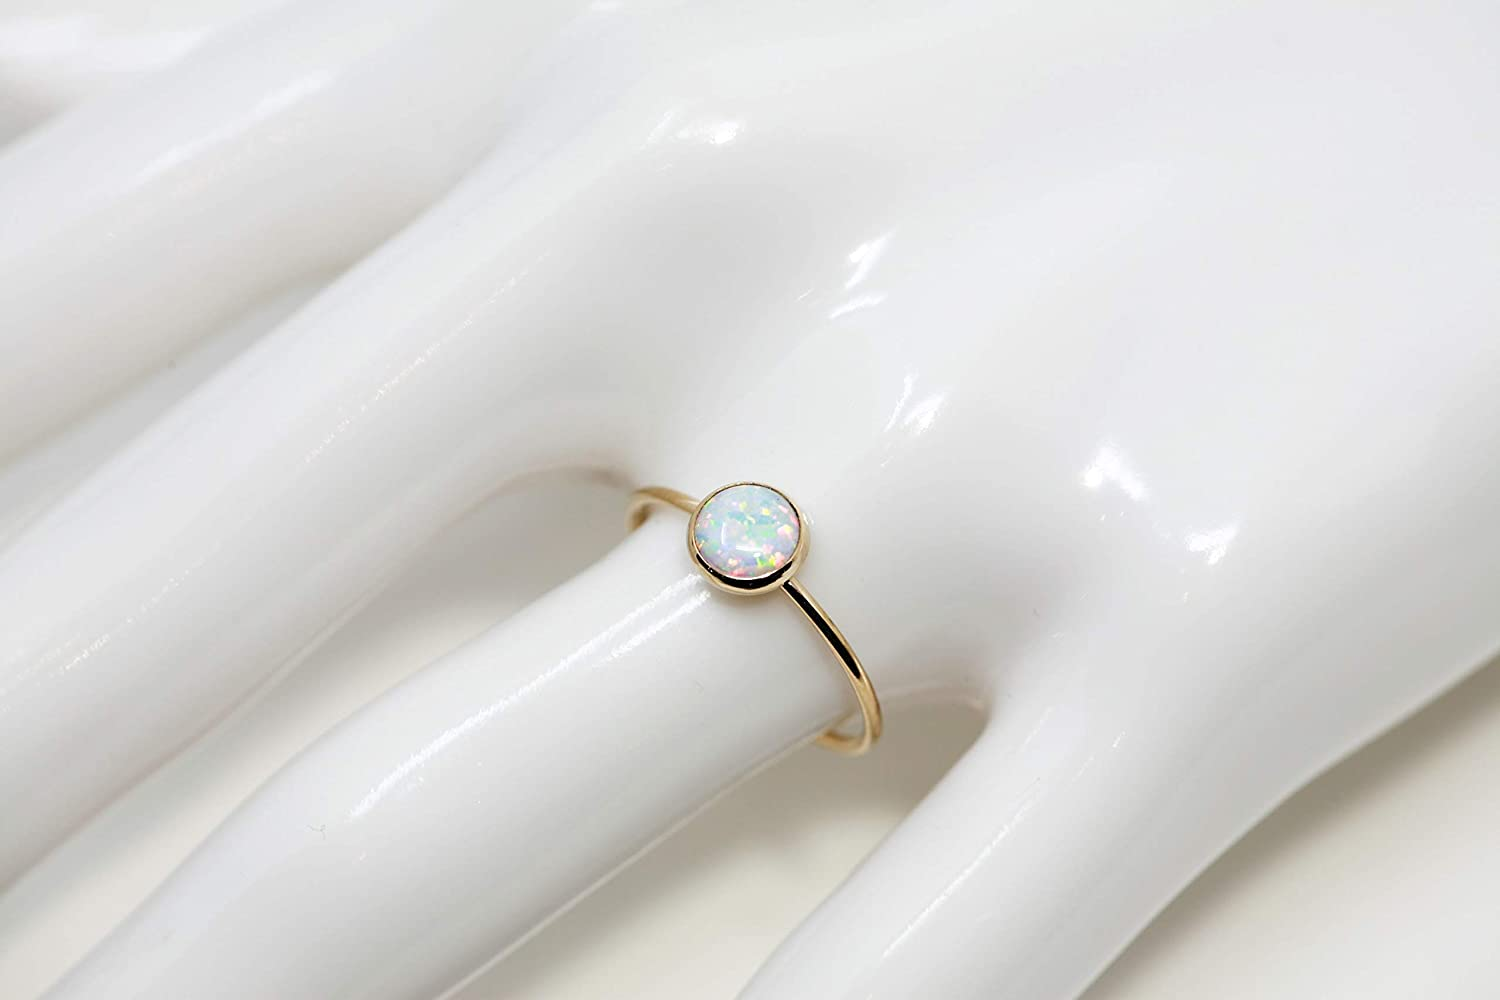 Round 6 mm Created Opal and 14K Gold Filled Skinny Ring Sizes 5-8